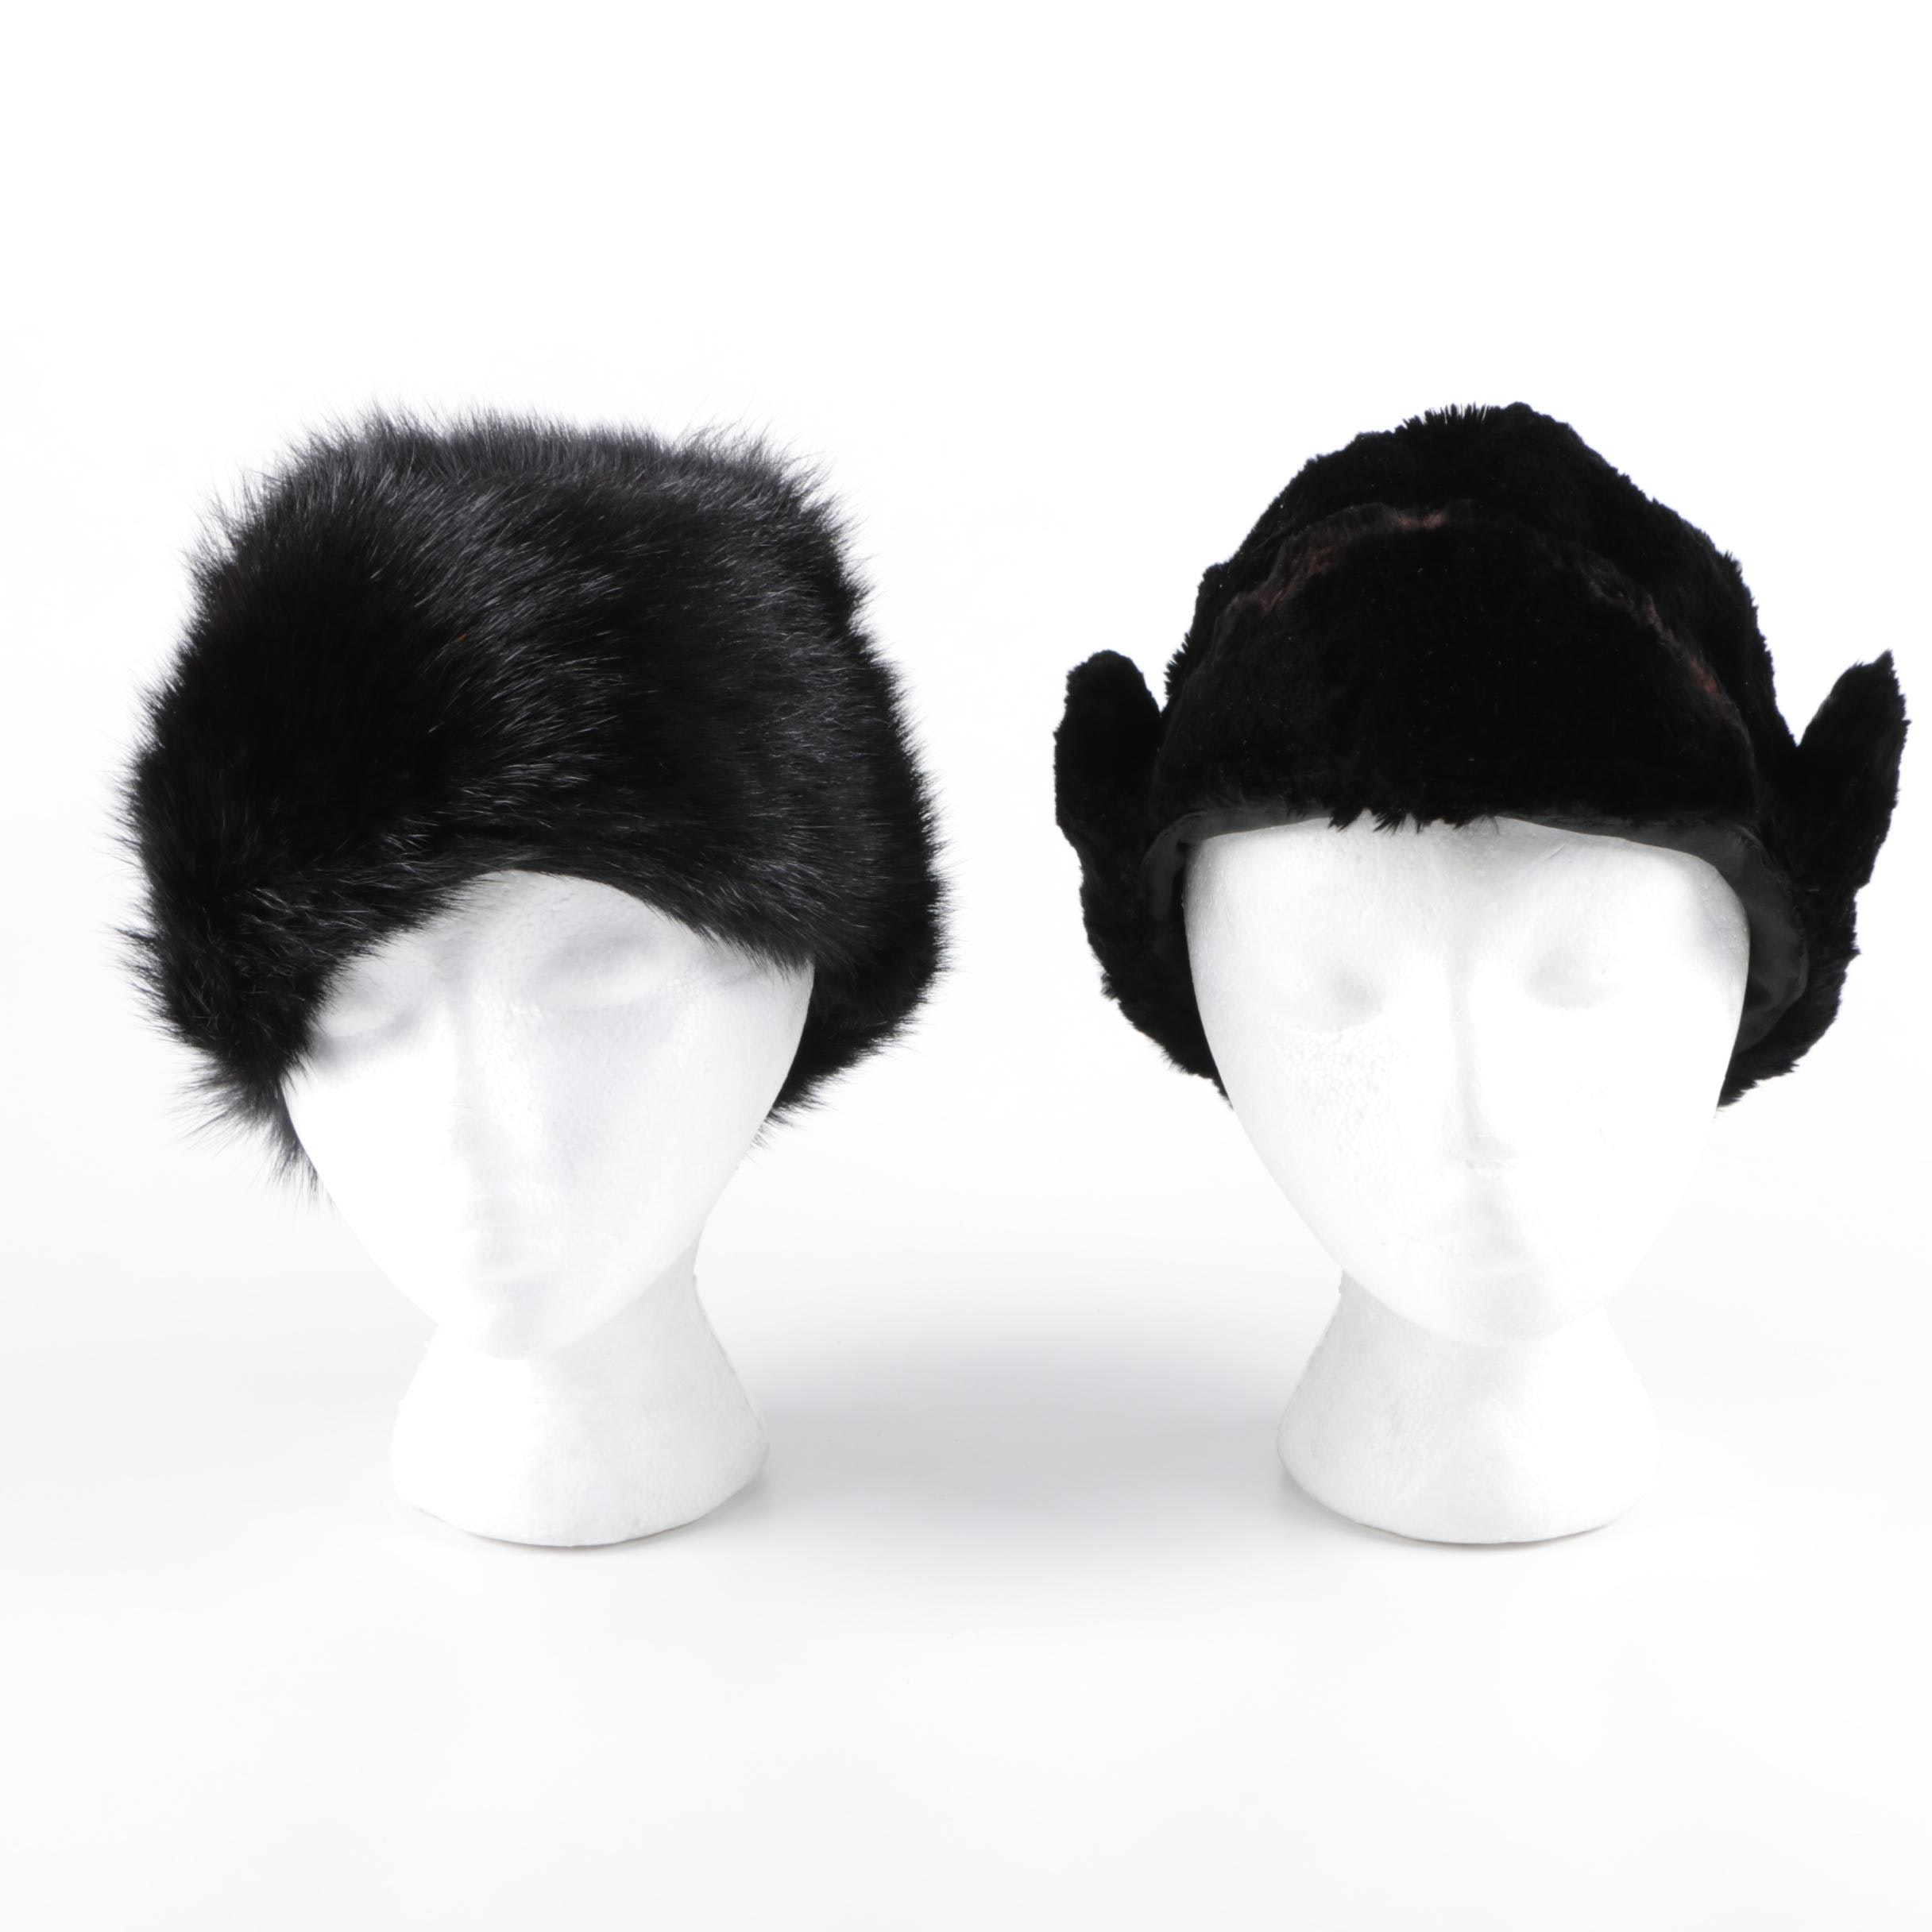 Dyed Black Sheared Beaver Fur and Dyed Black Fox Fur Hats